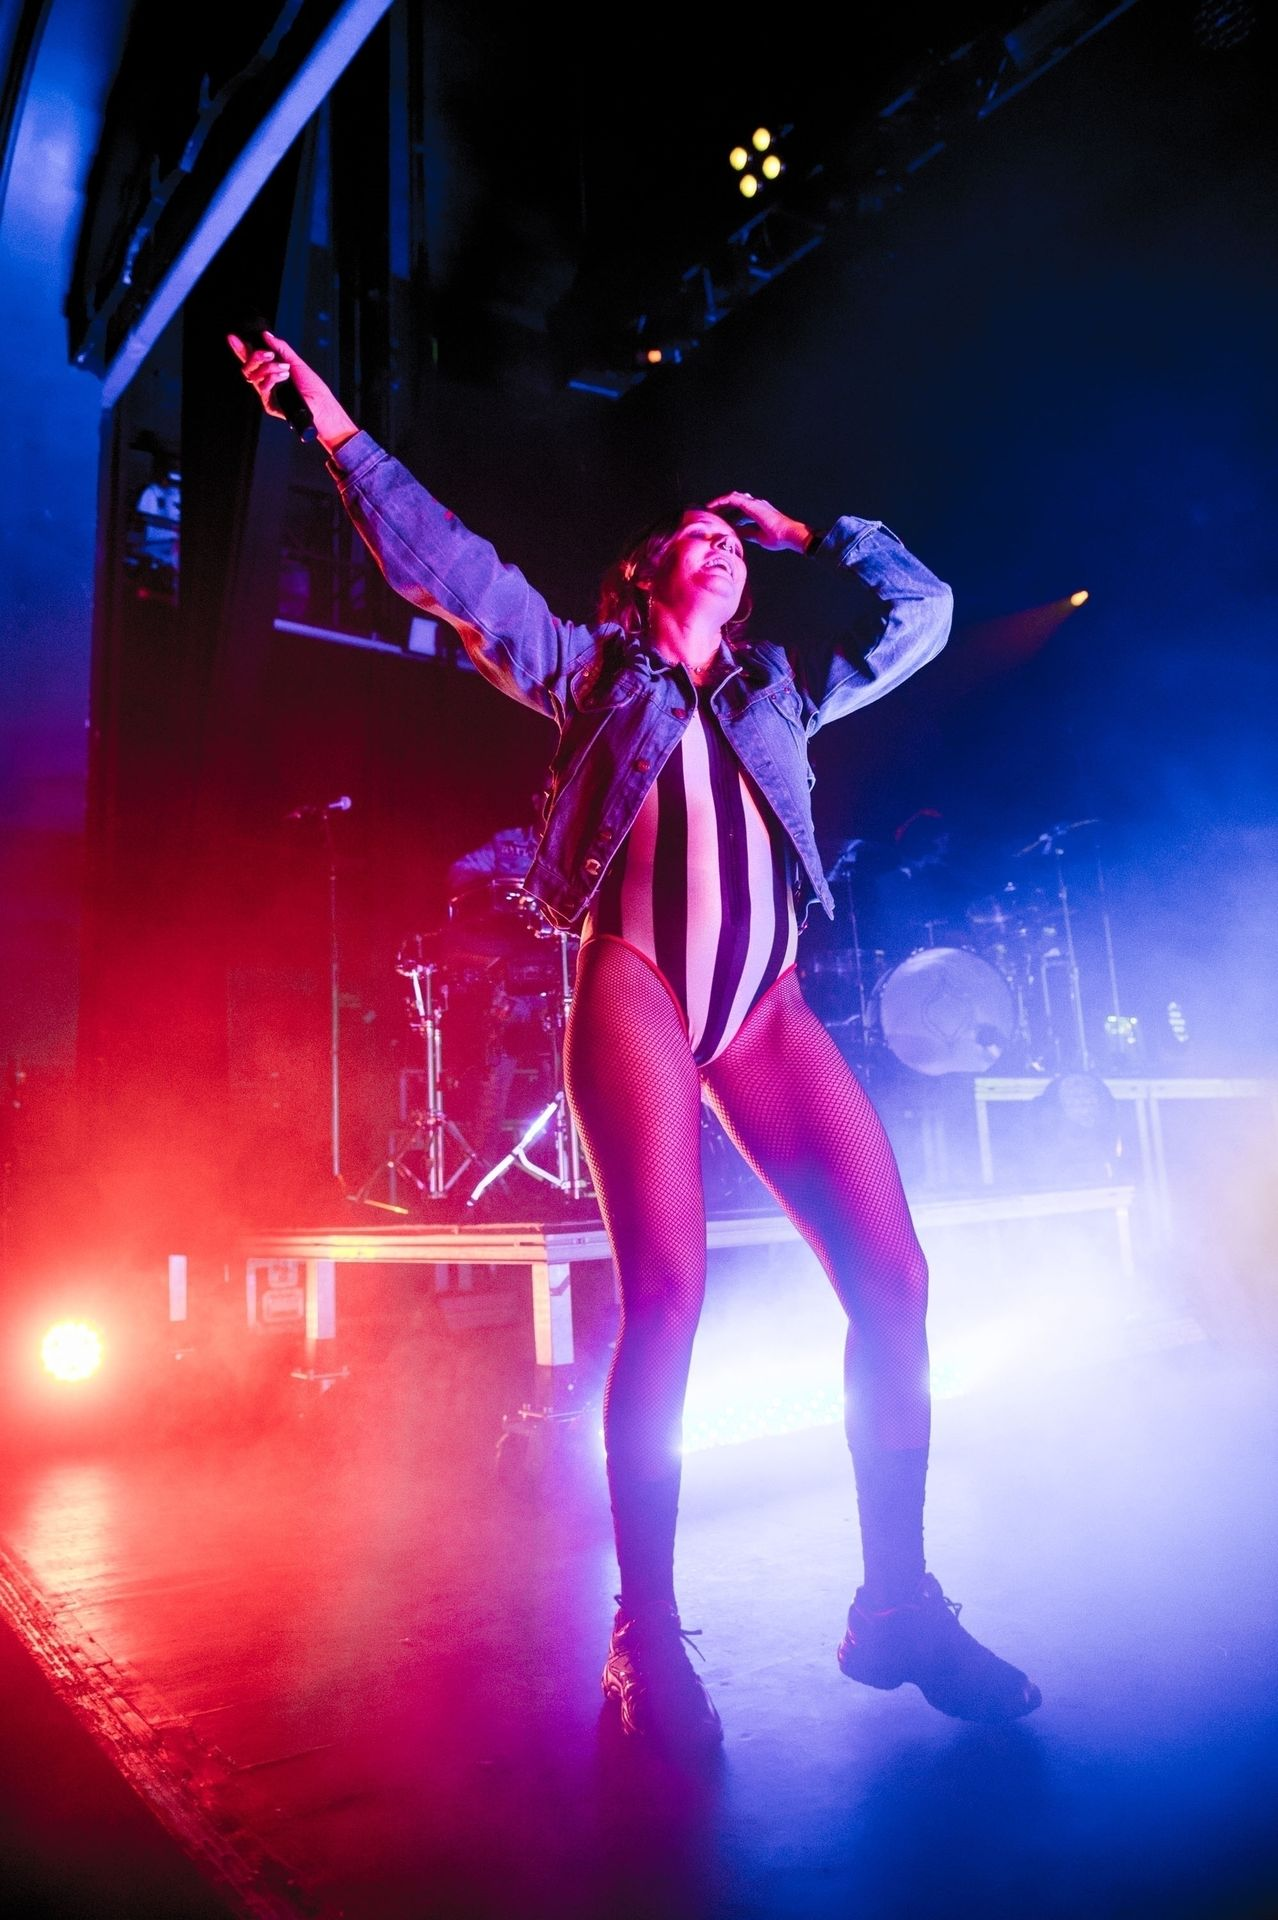 Tove Lo Is In Concert Performing Live At O2 Forum Kentish Town In London 0052